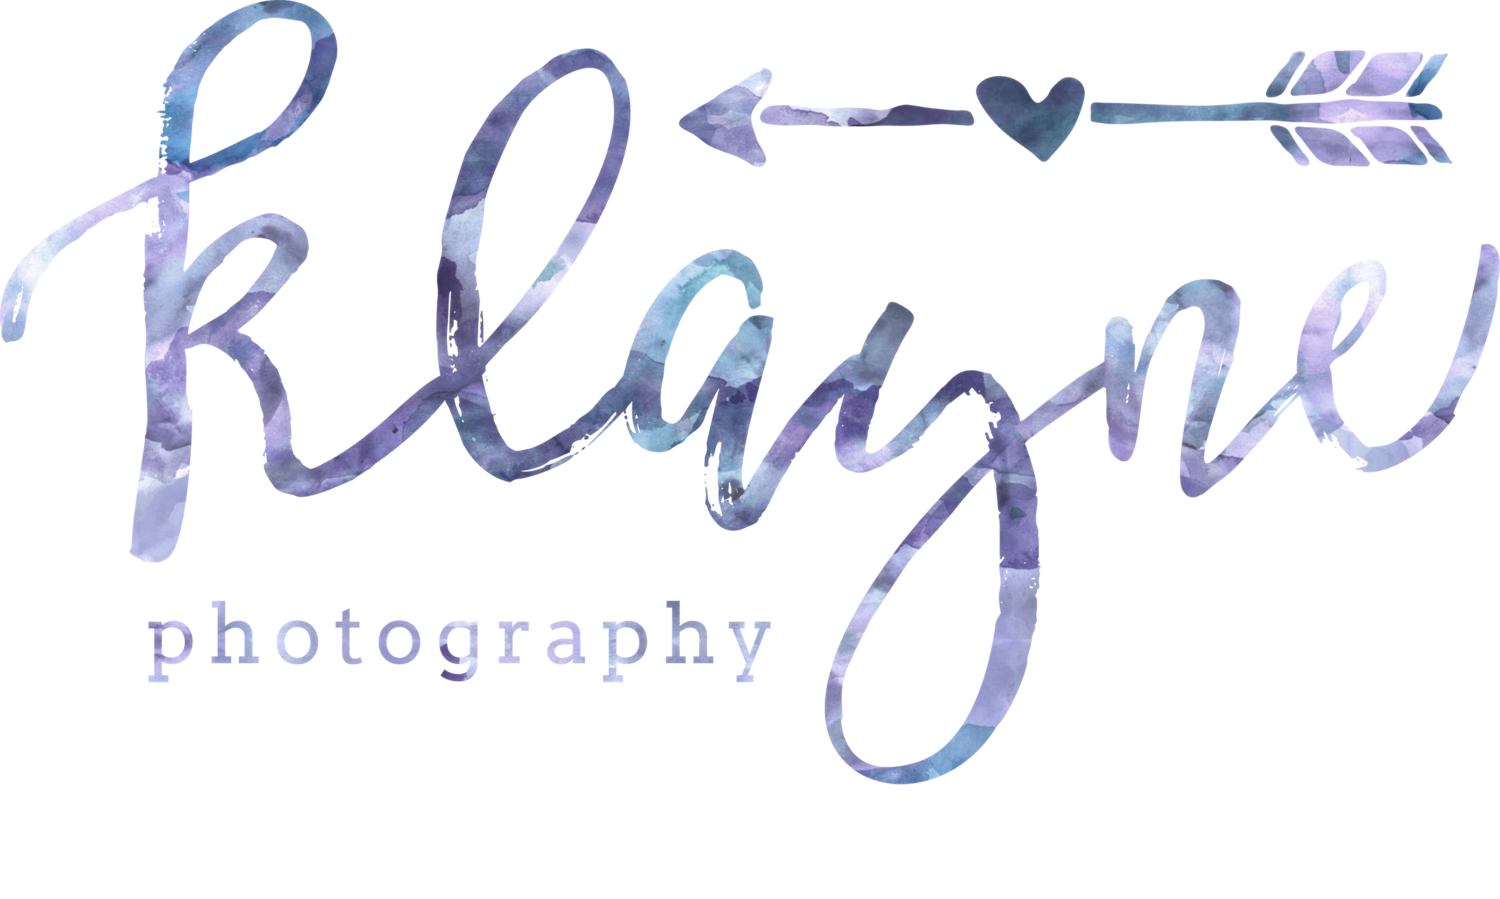 klayne photography